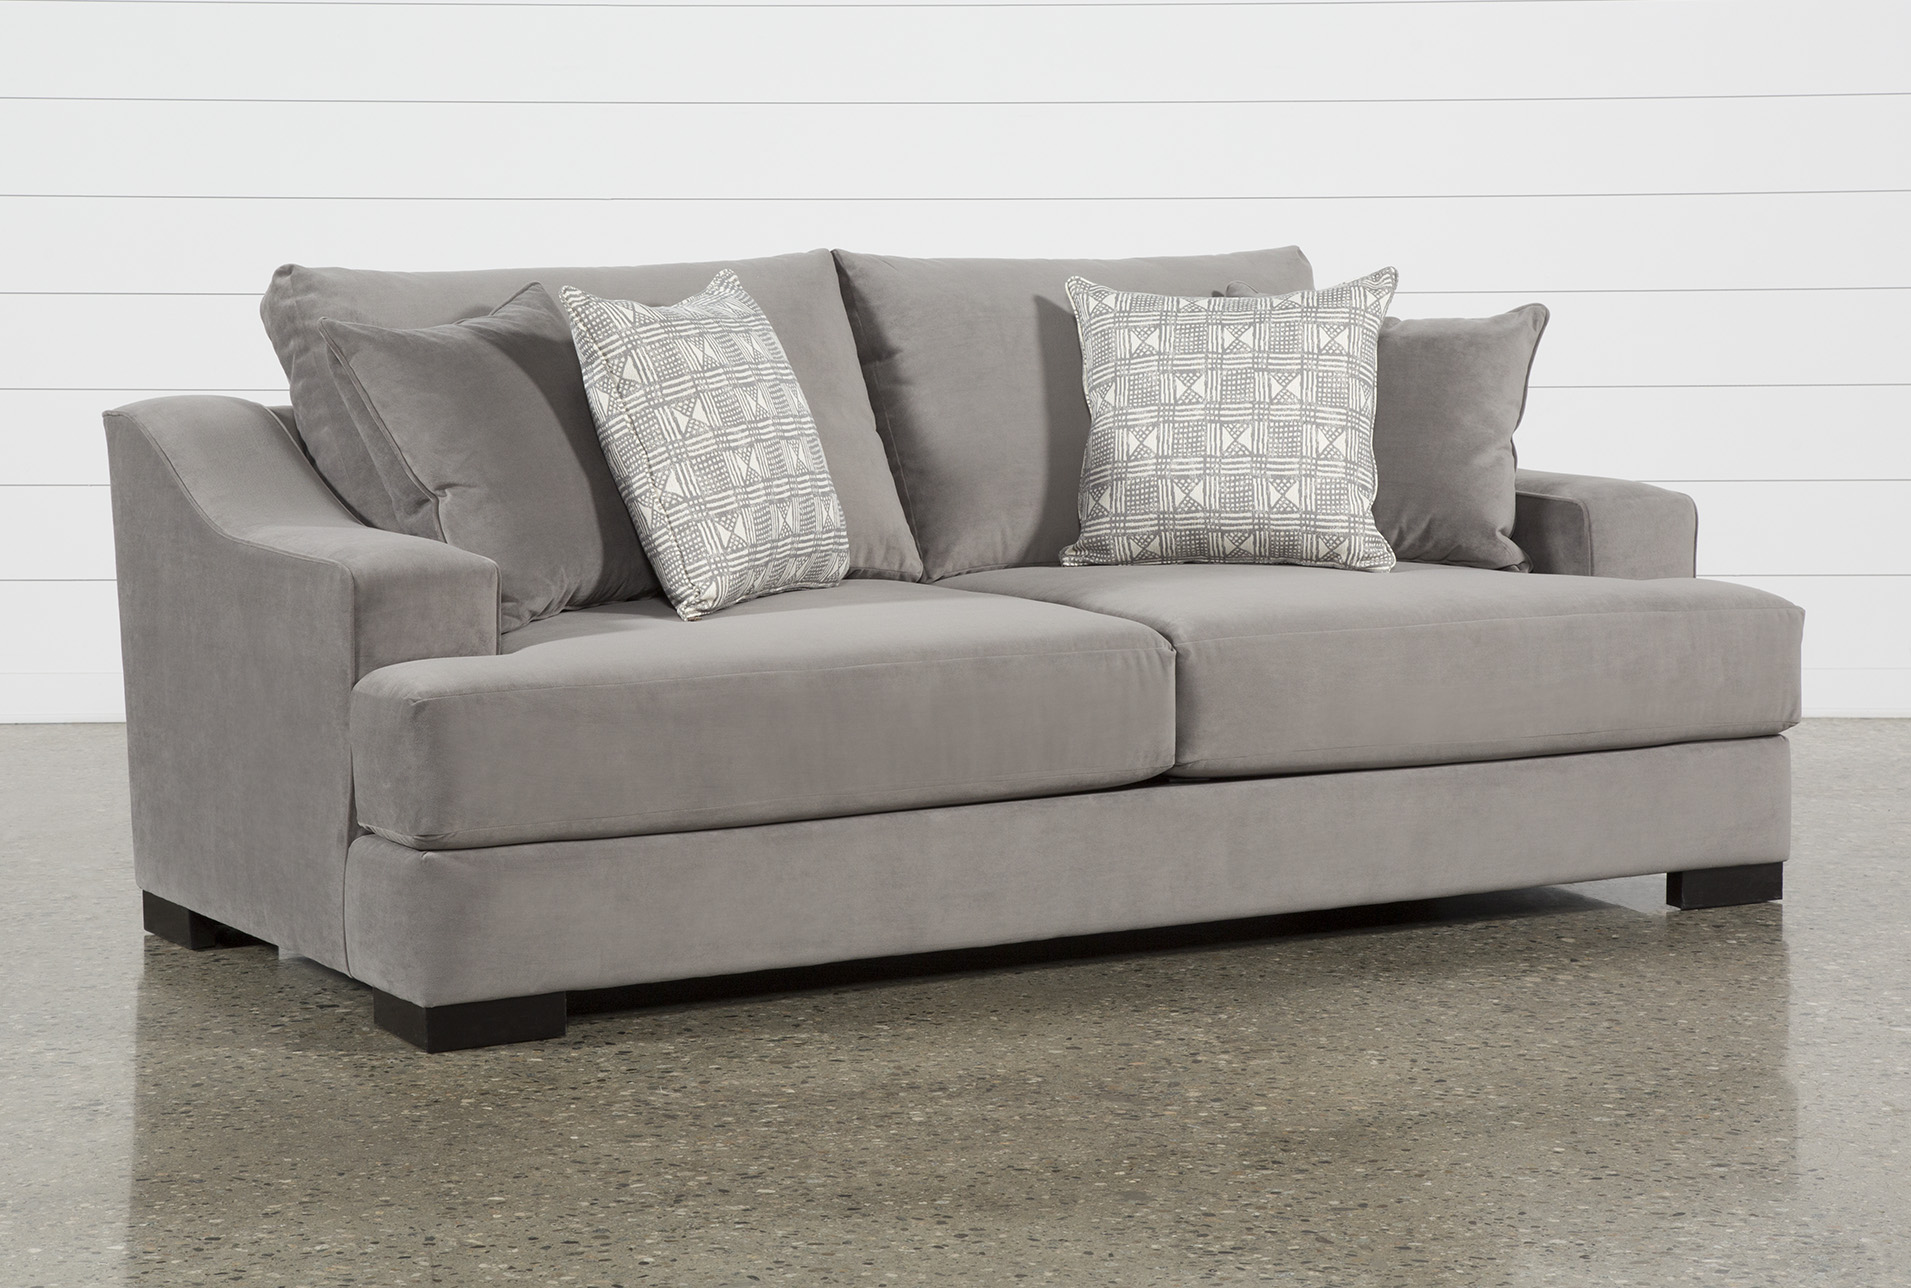 Lodge Sofa Sofa Gray Sofa Free Couch